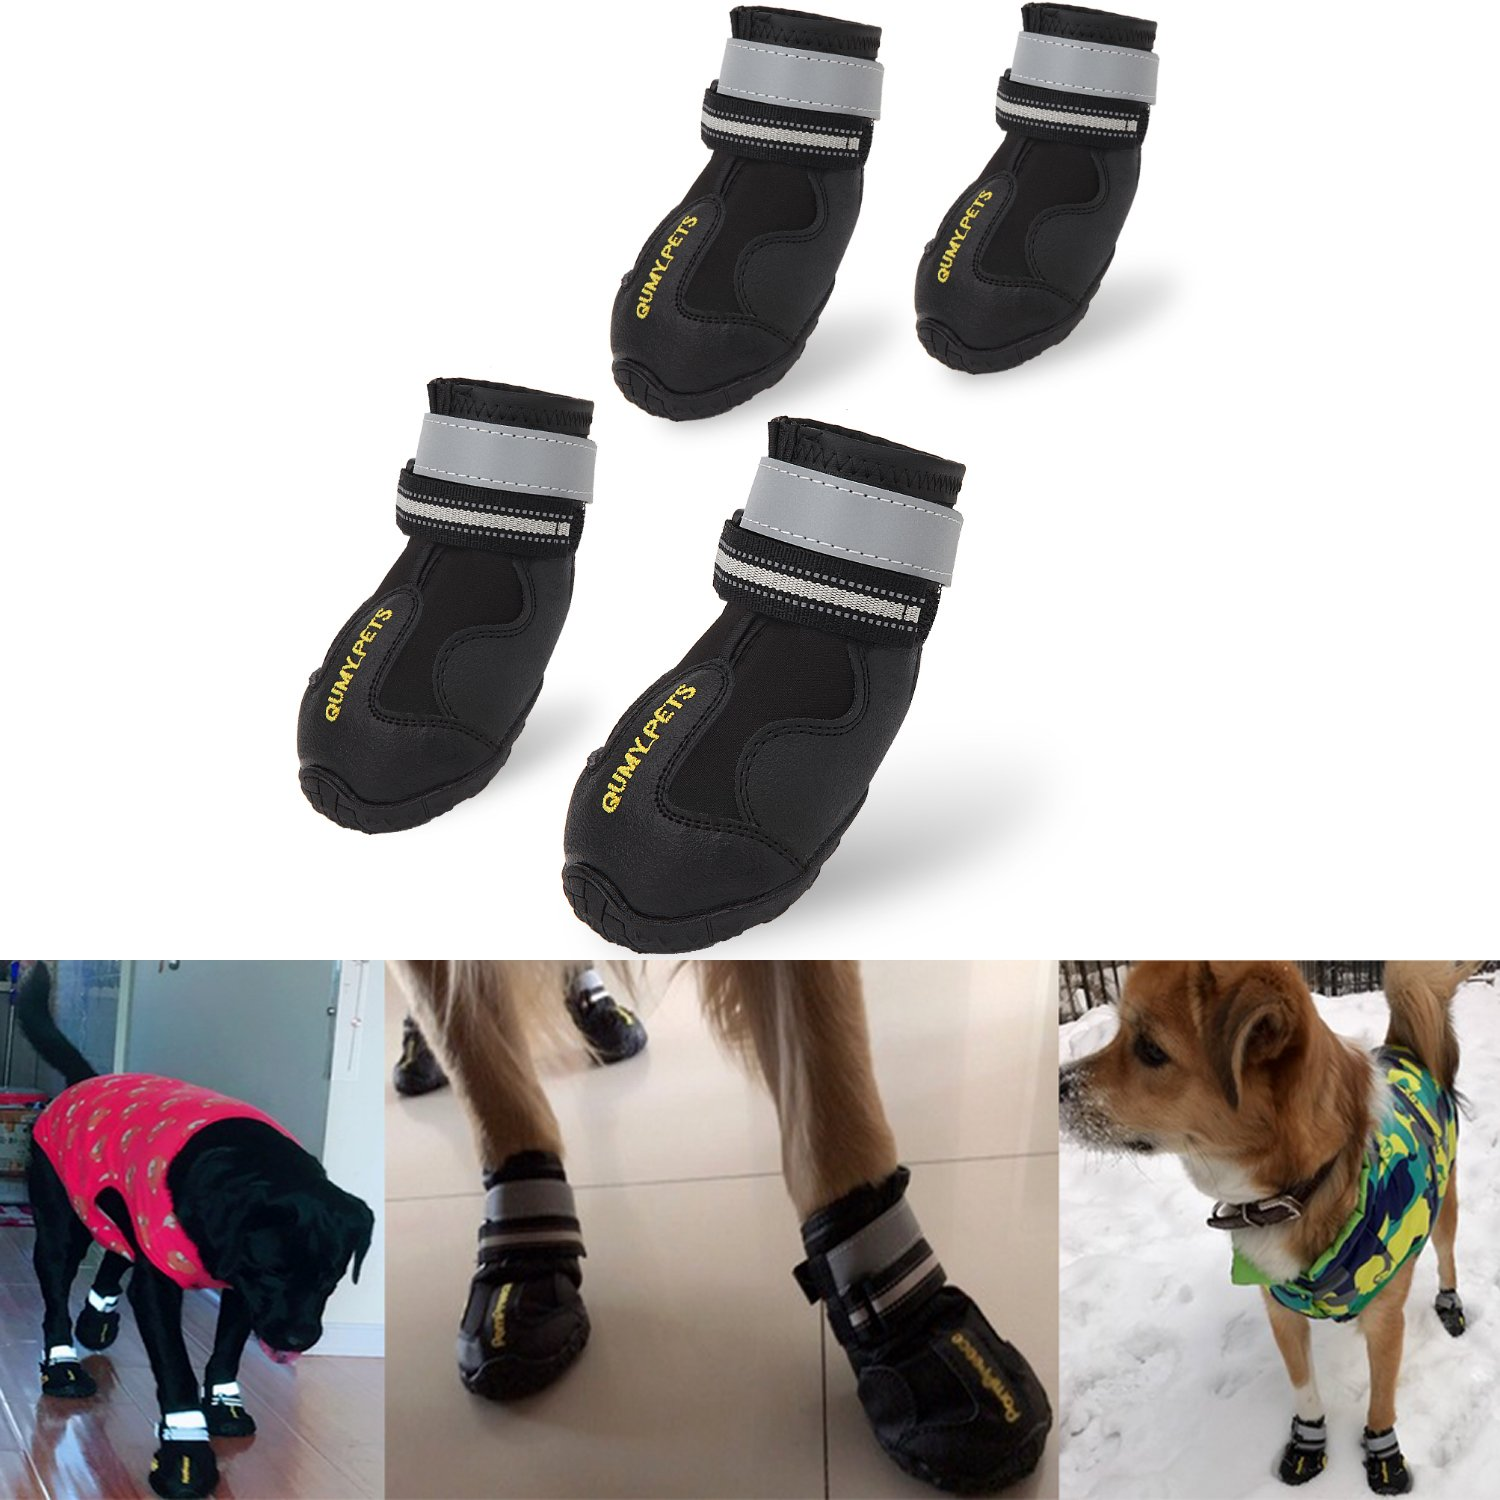 QUMY Dog Boots Waterproof Shoes for Large Dogs with Reflective Velcro Rugged Anti-Slip Sole Black 4PCS (Size 6: 2.9x2.5 Inch)